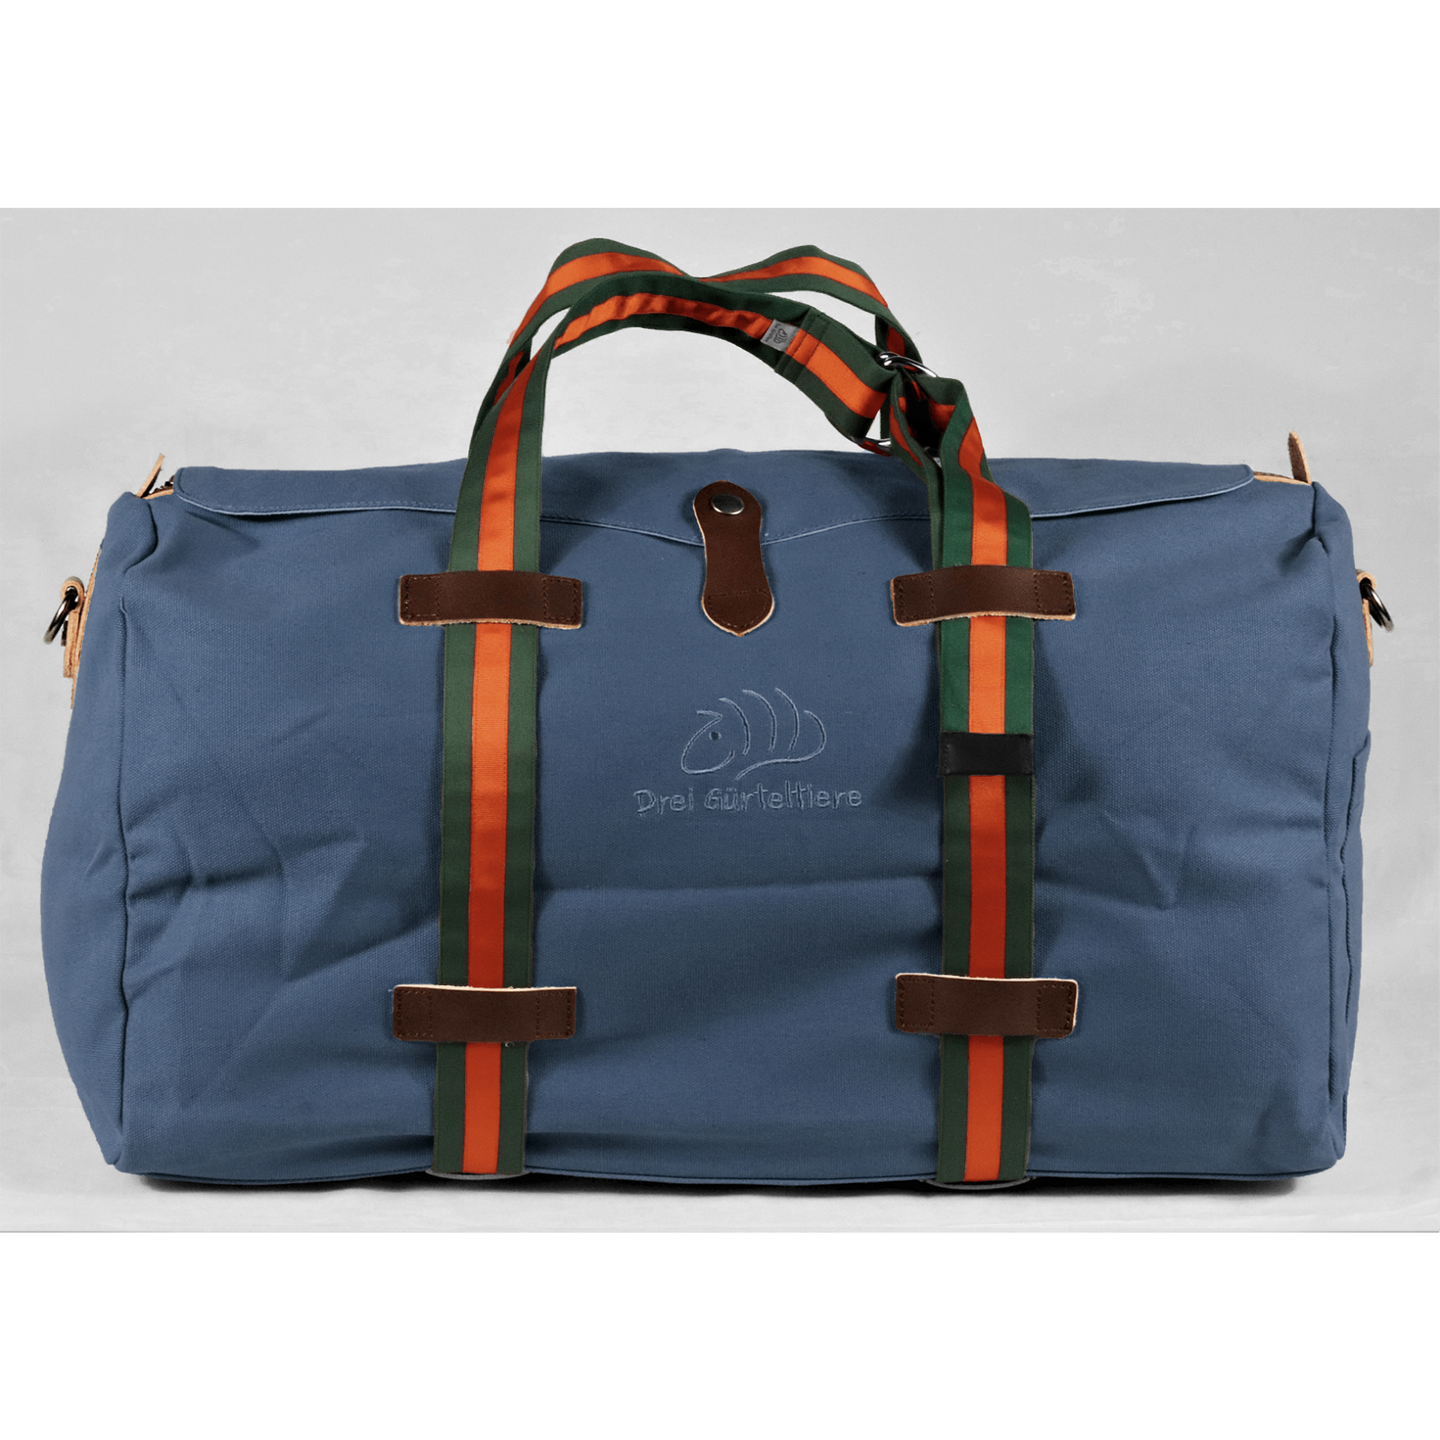 Weekender - Customer's Product with price 172.00 ID R9NJvKbDAEHy9Eu5pSzymBSn